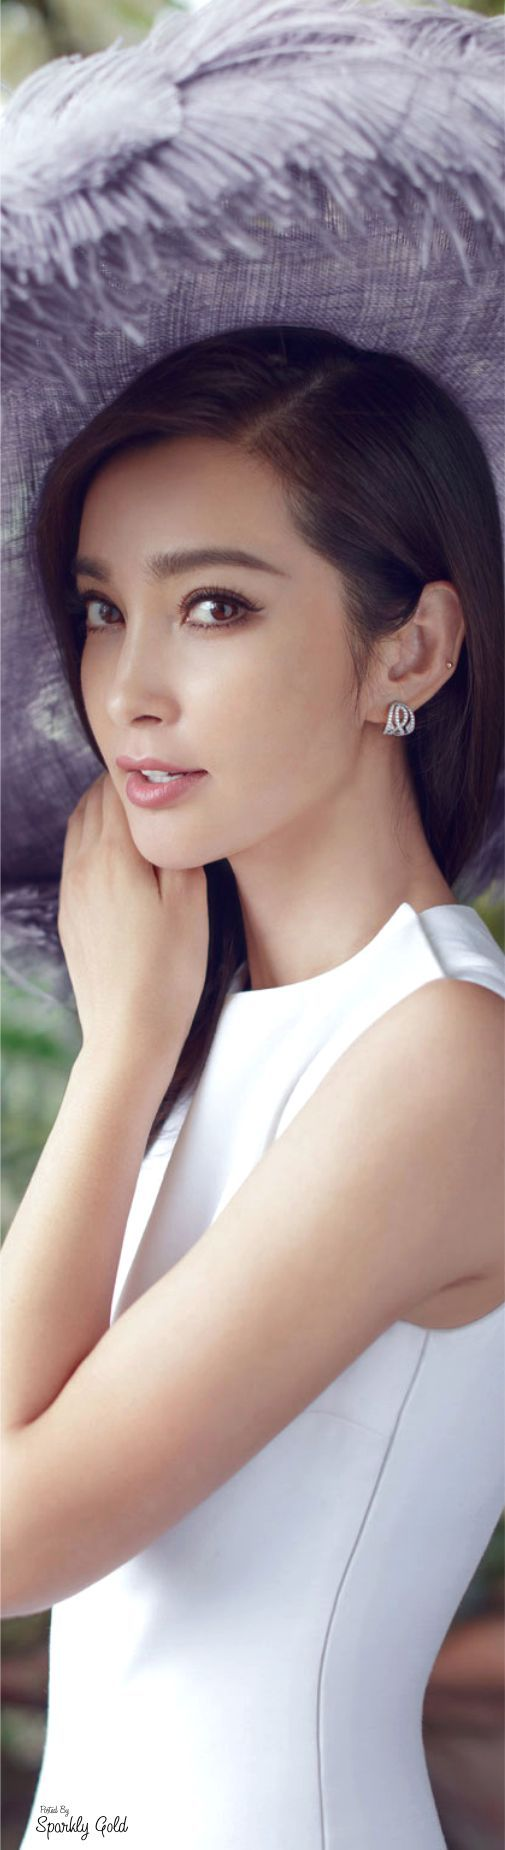 Li Bingbing, Harper's Bazaar China Sep 16